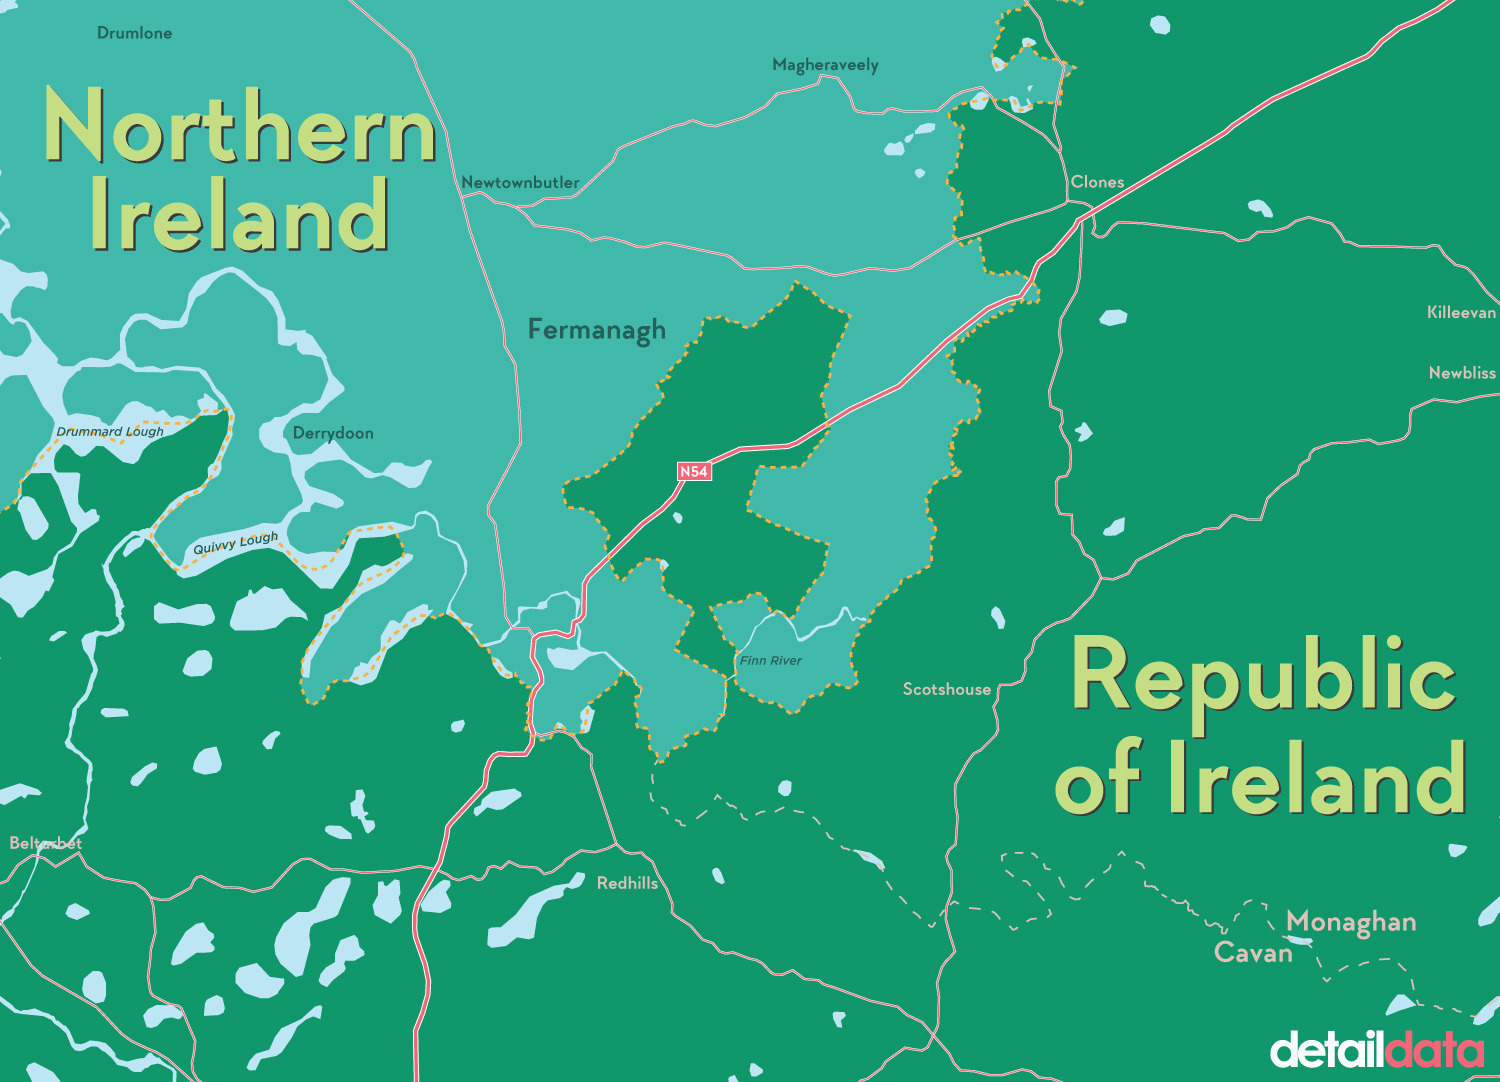 The Drummully Polyp in Co Monaghan is only accessible from Co Fermanagh. Infographic by Chris Scott